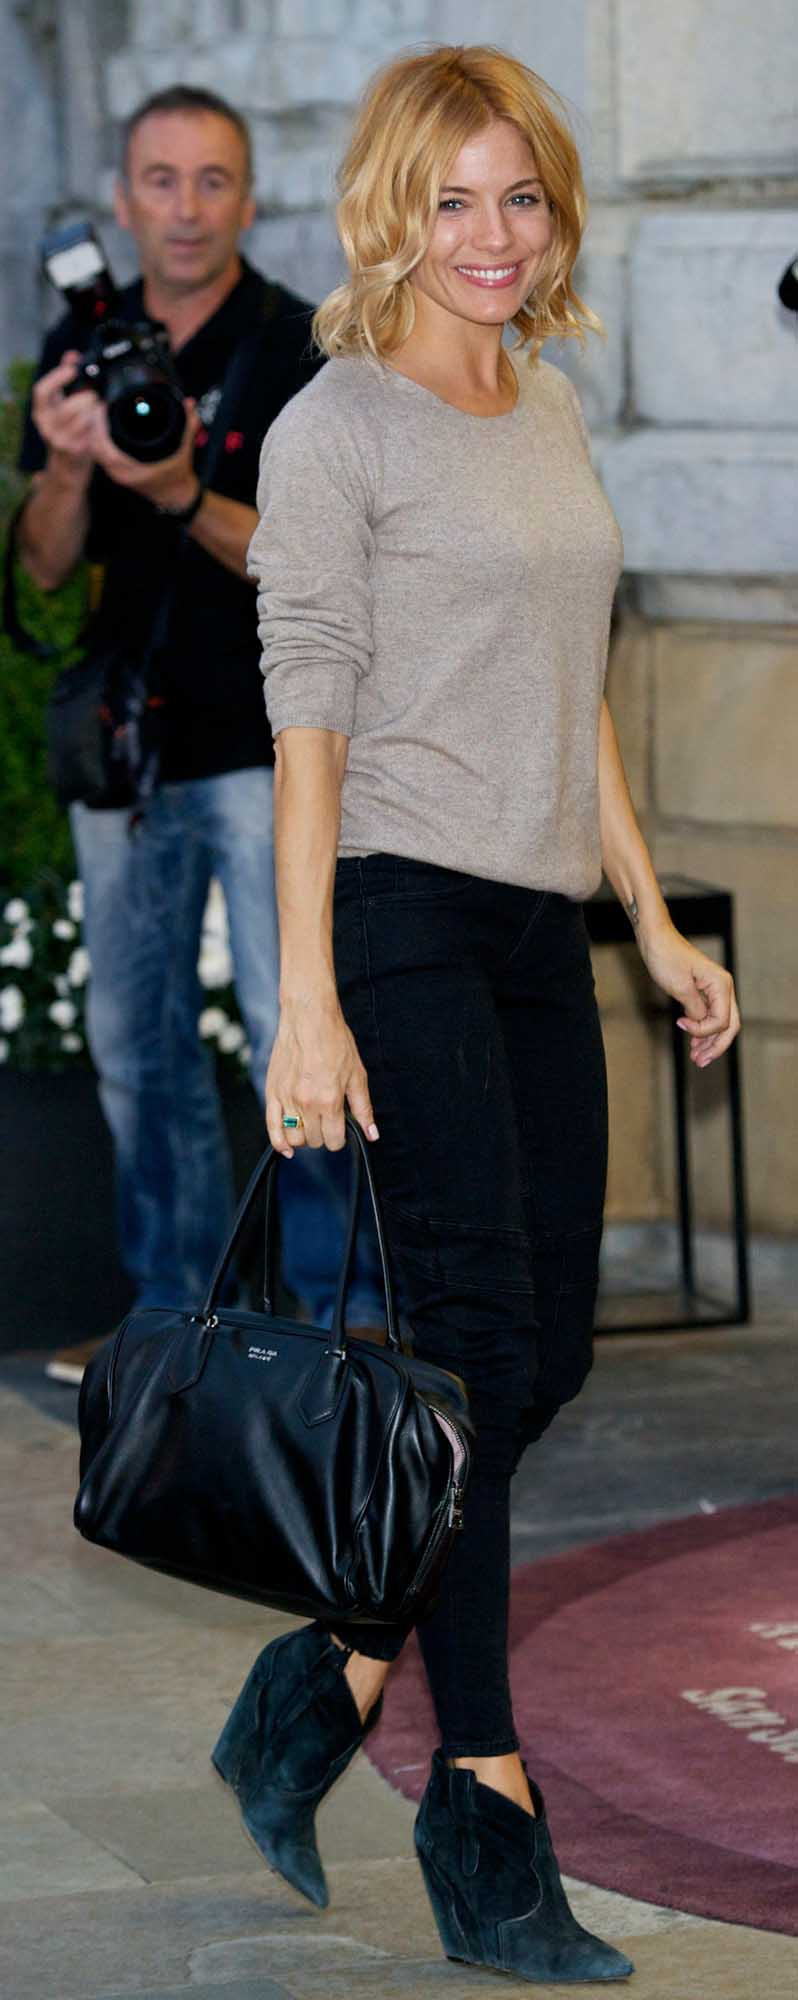 black-skinny-jeans-grayl-sweater-black-bag-black-shoe-booties-siennamiller-fall-winter-blonde-work.jpg